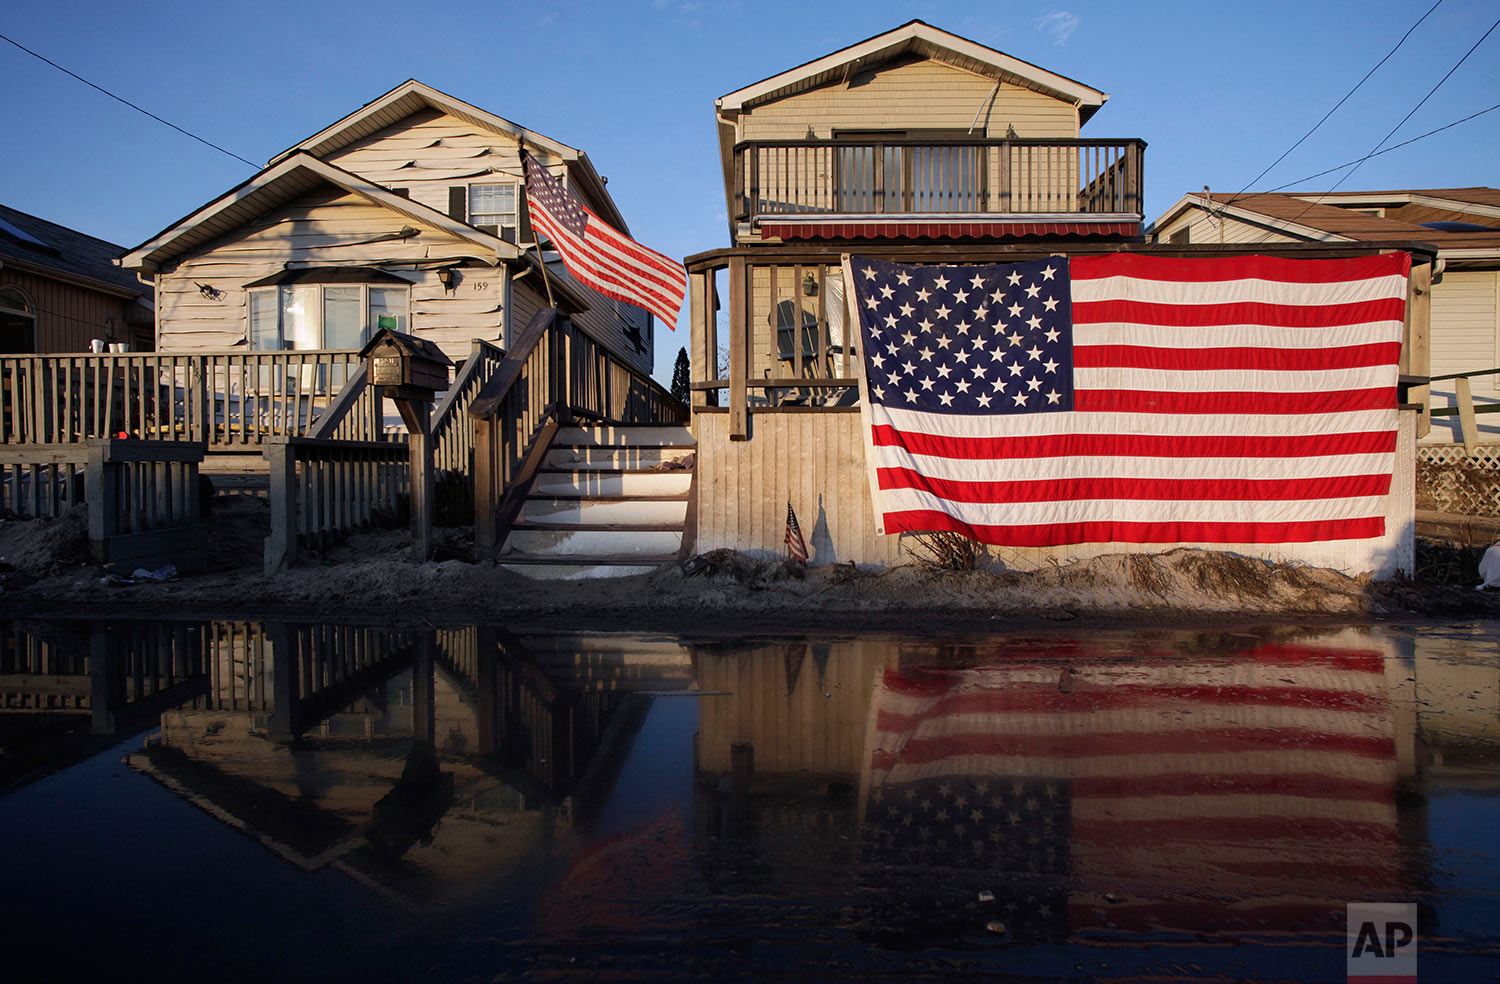 United States flags are displayed on flood-damaged homes in the Breezy Point section of Queens, N.Y., Wednesday, Nov. 28, 2012. (AP Photo/Mark Lennihan)